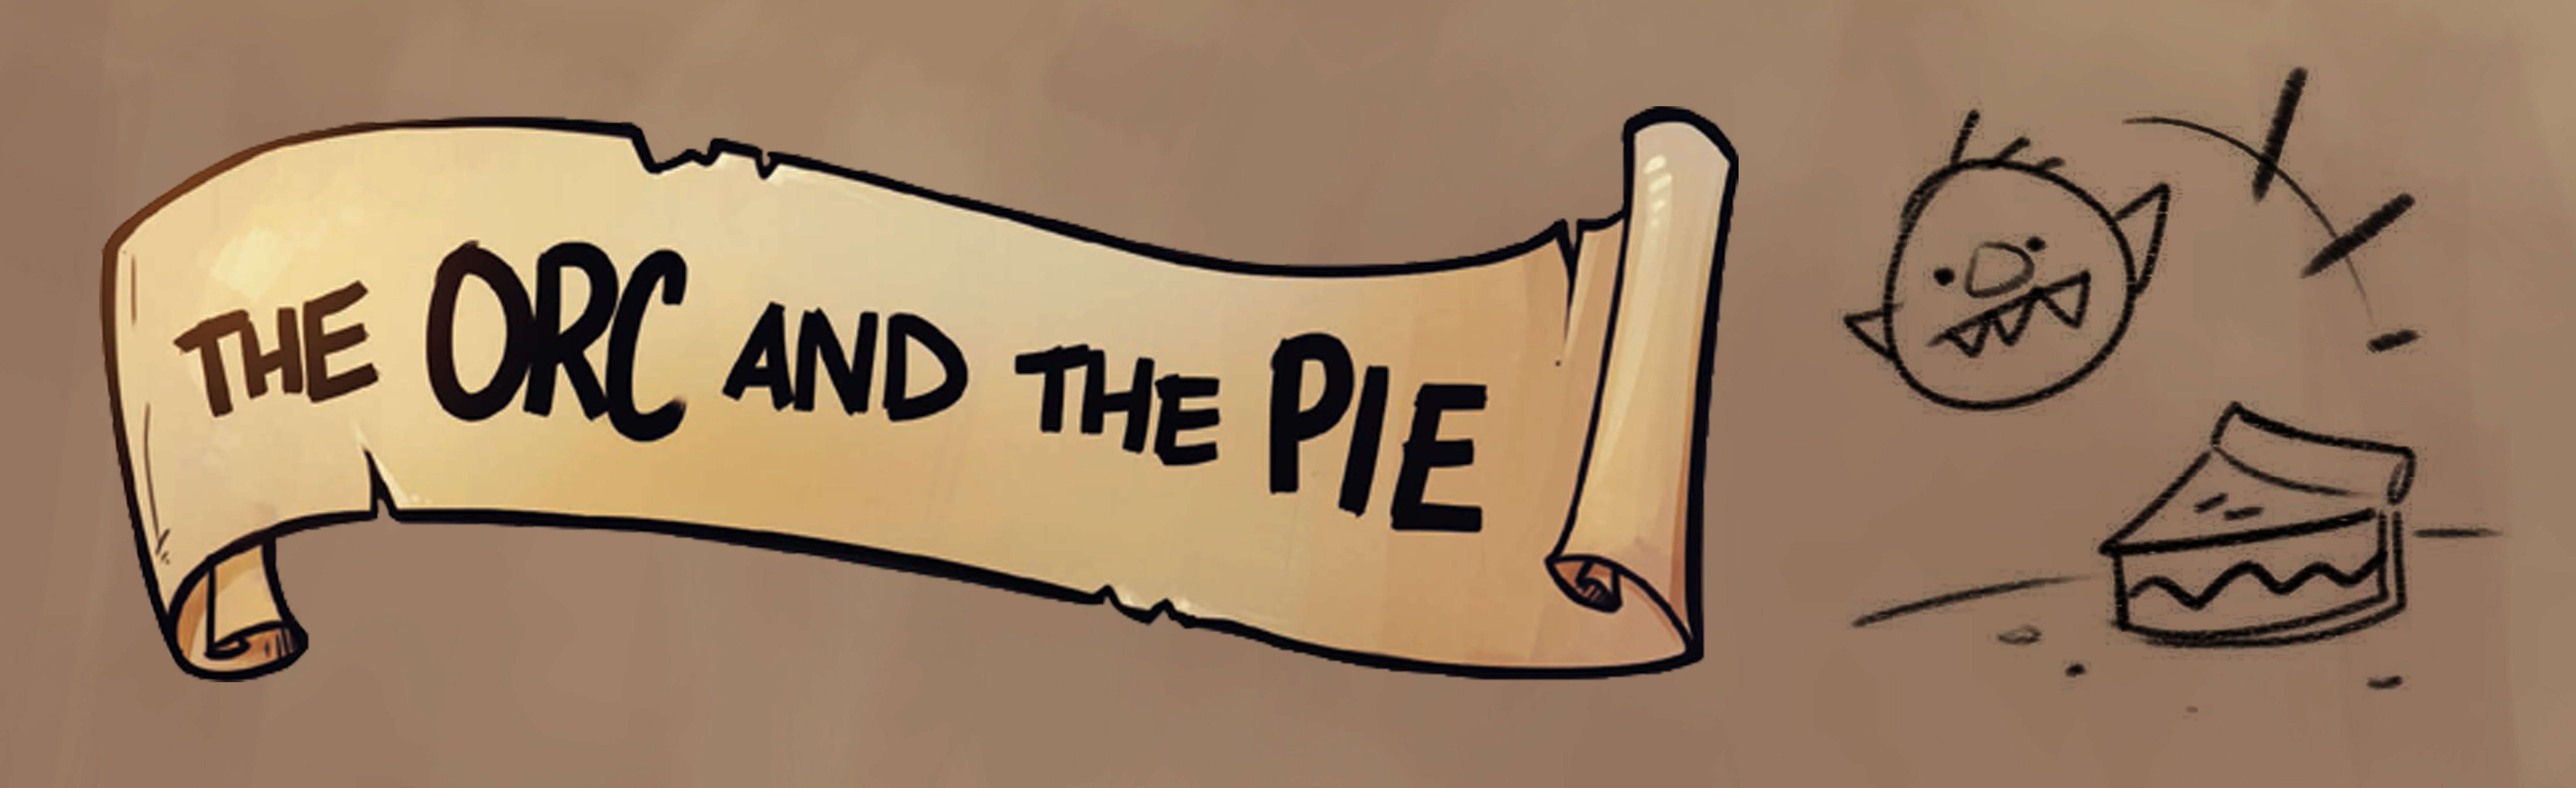 The Orc and the Pie